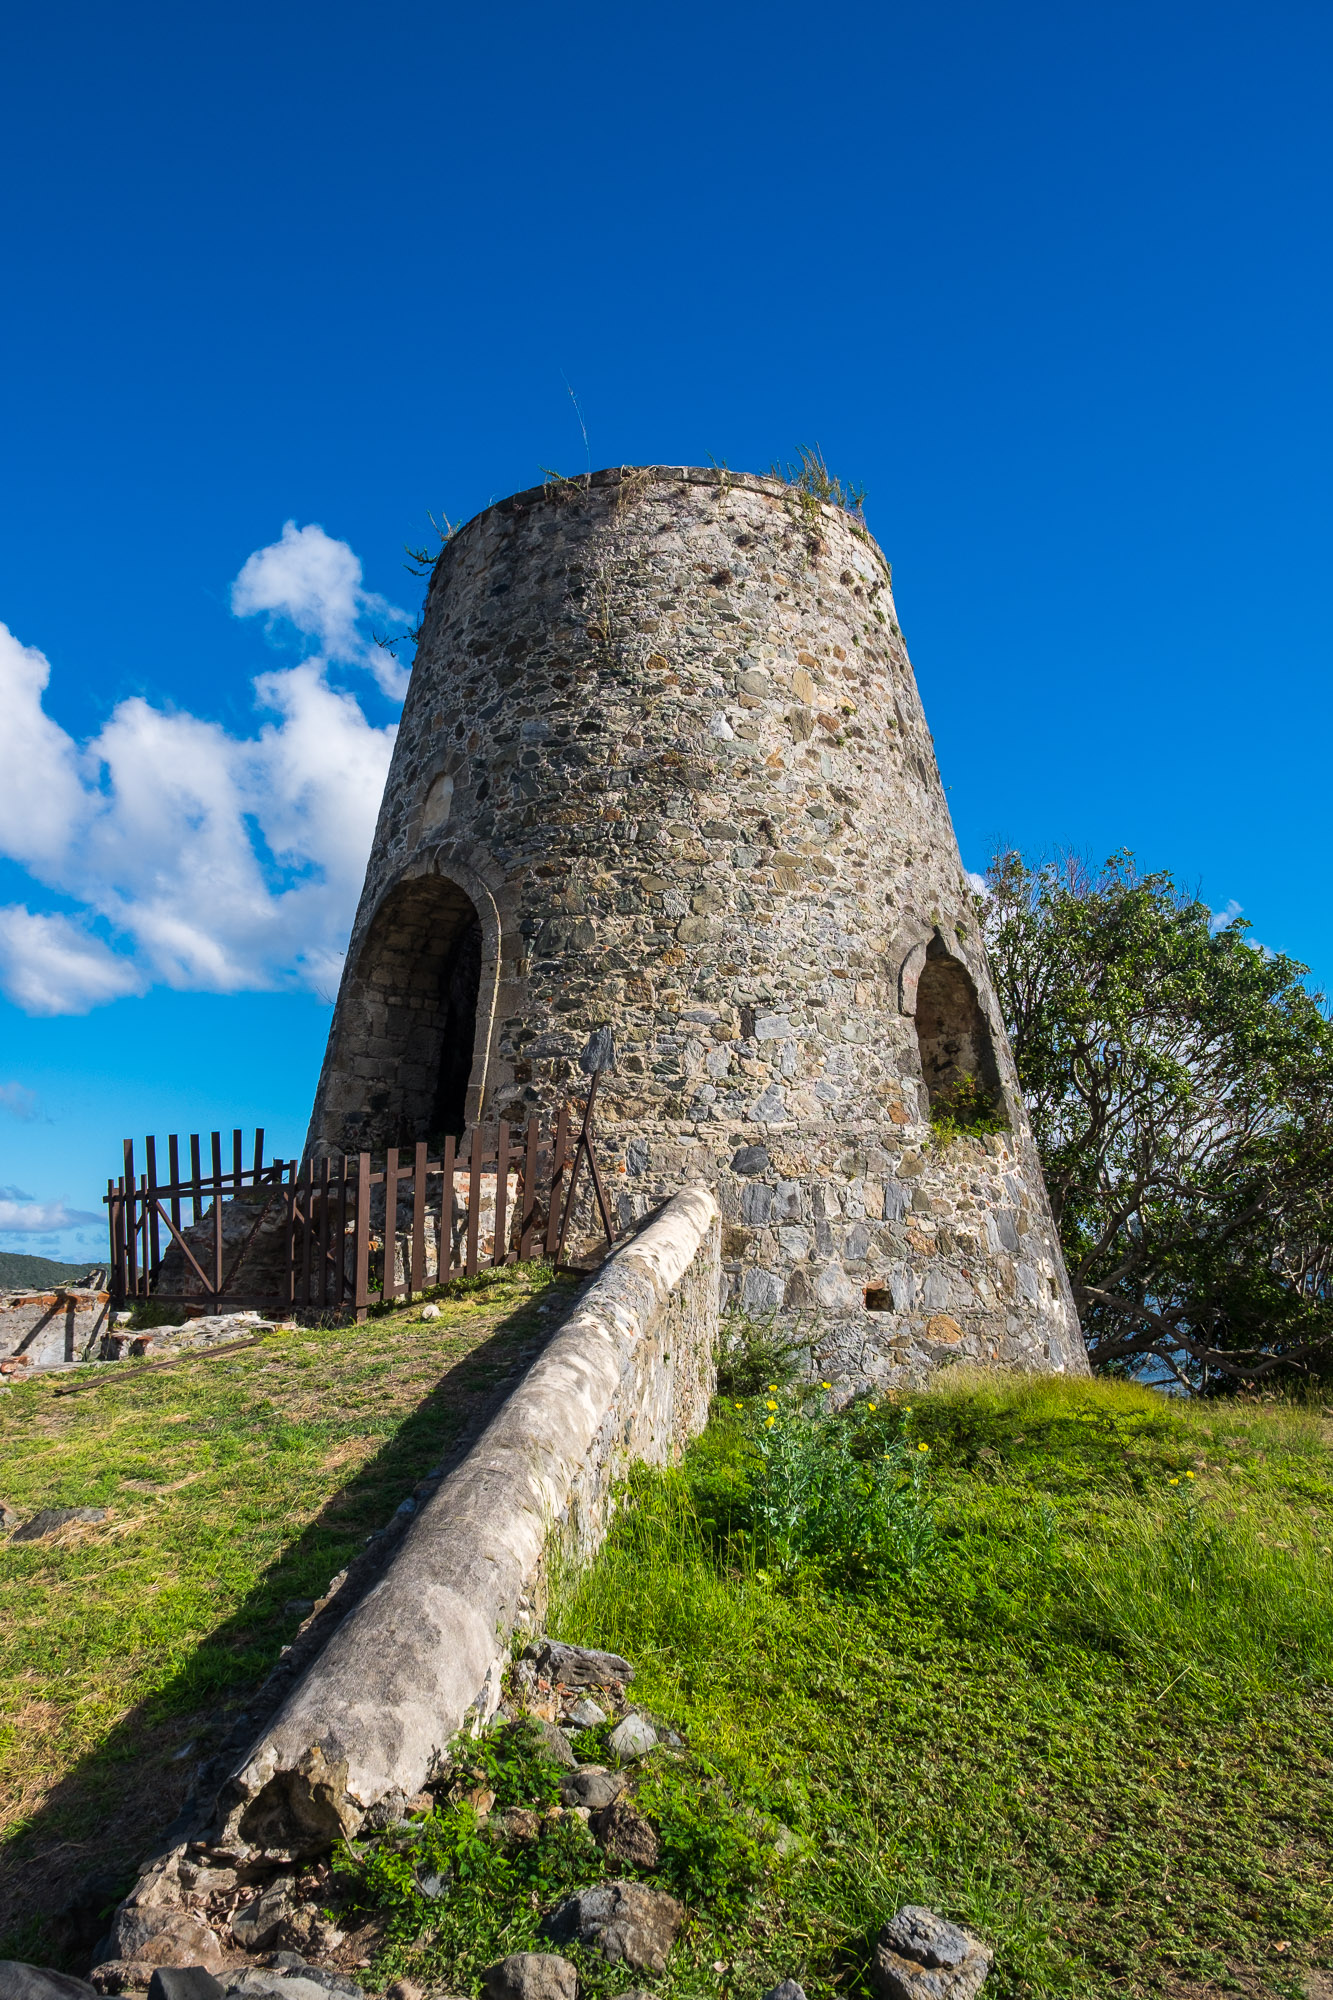 The ruins of the old windmill at the Annaberg Sugarmill.